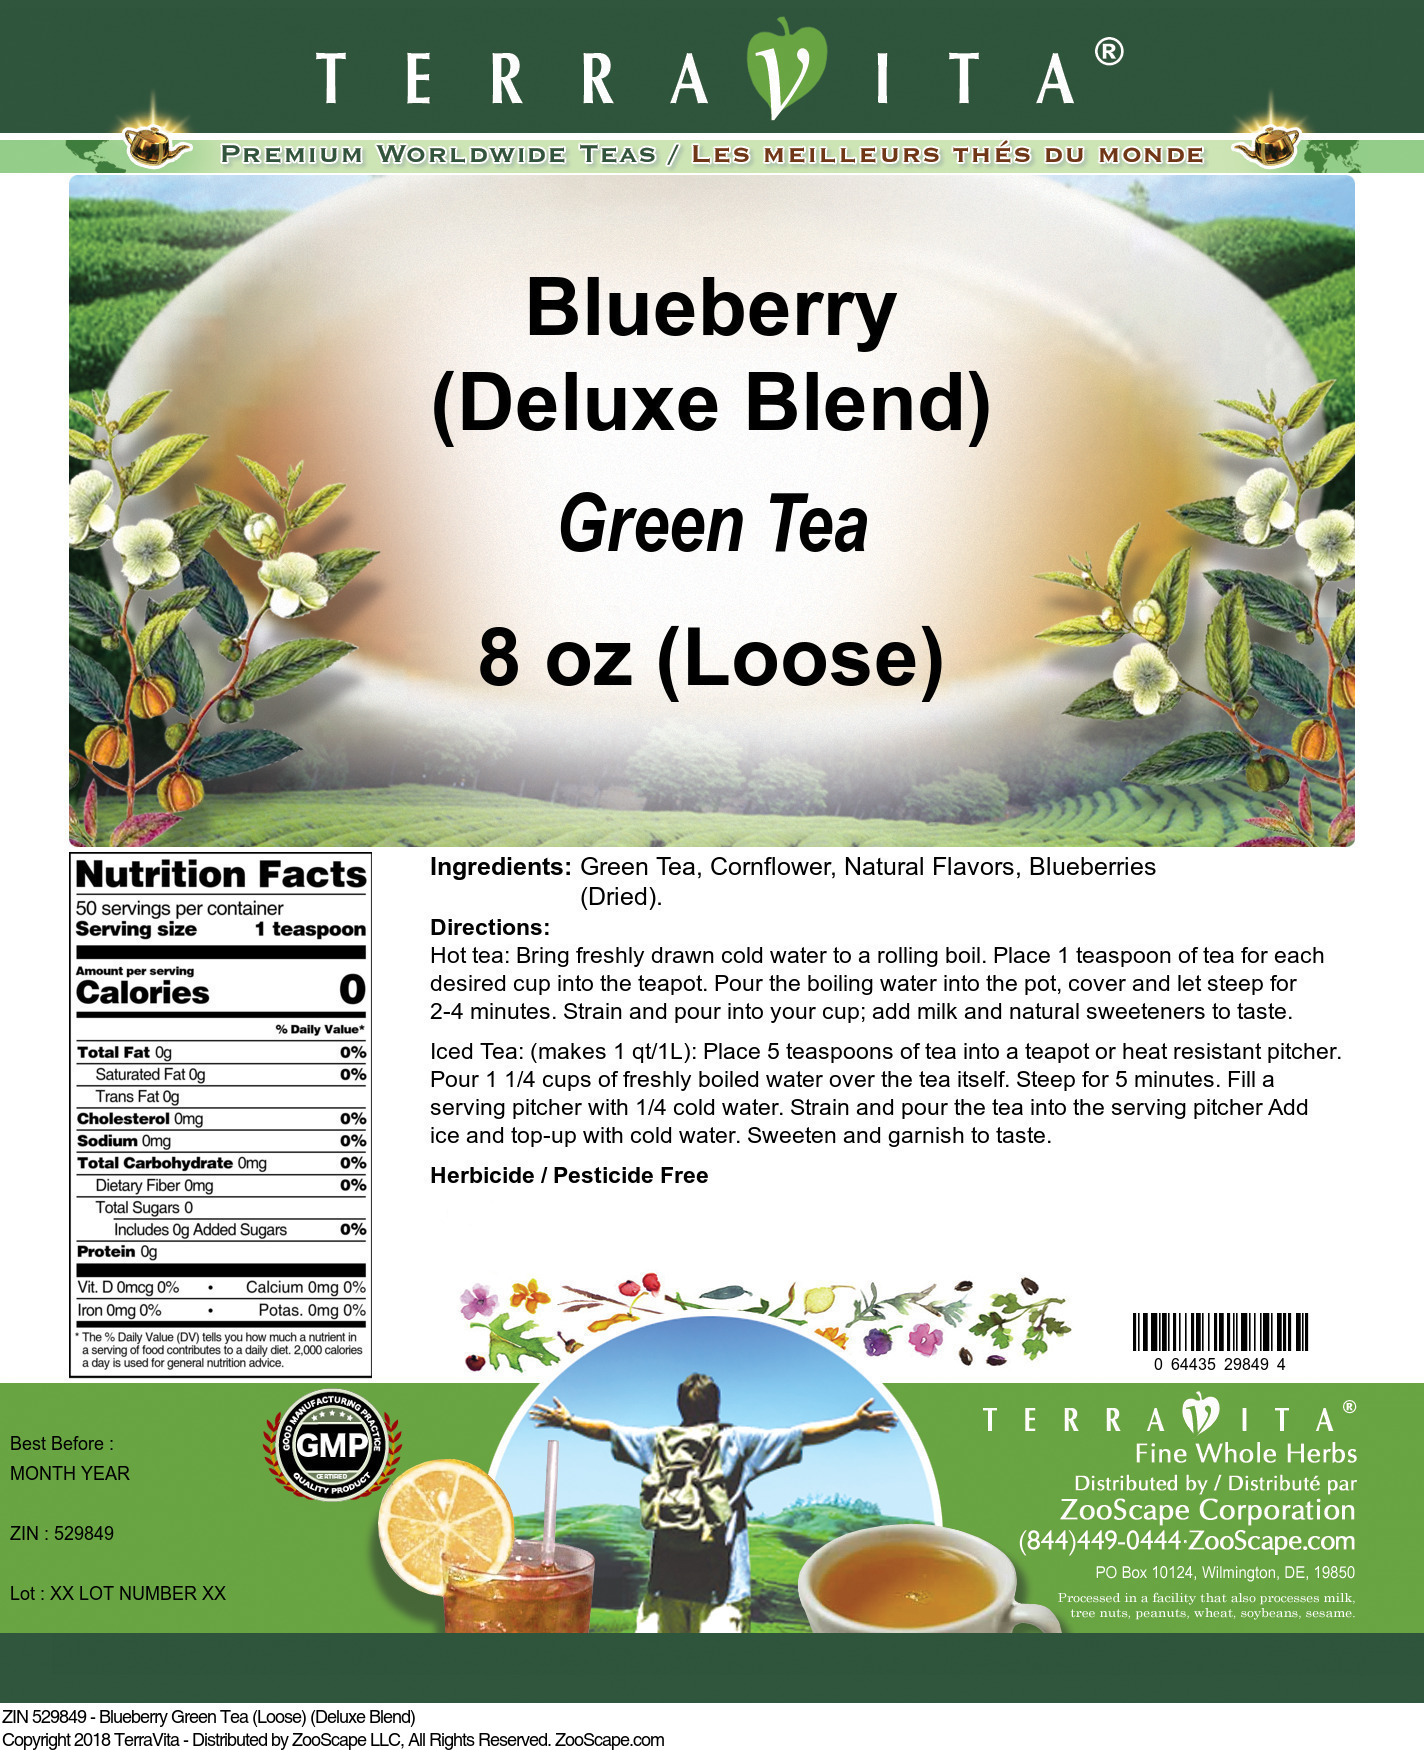 Blueberry Green Tea (Loose) (Deluxe Blend)